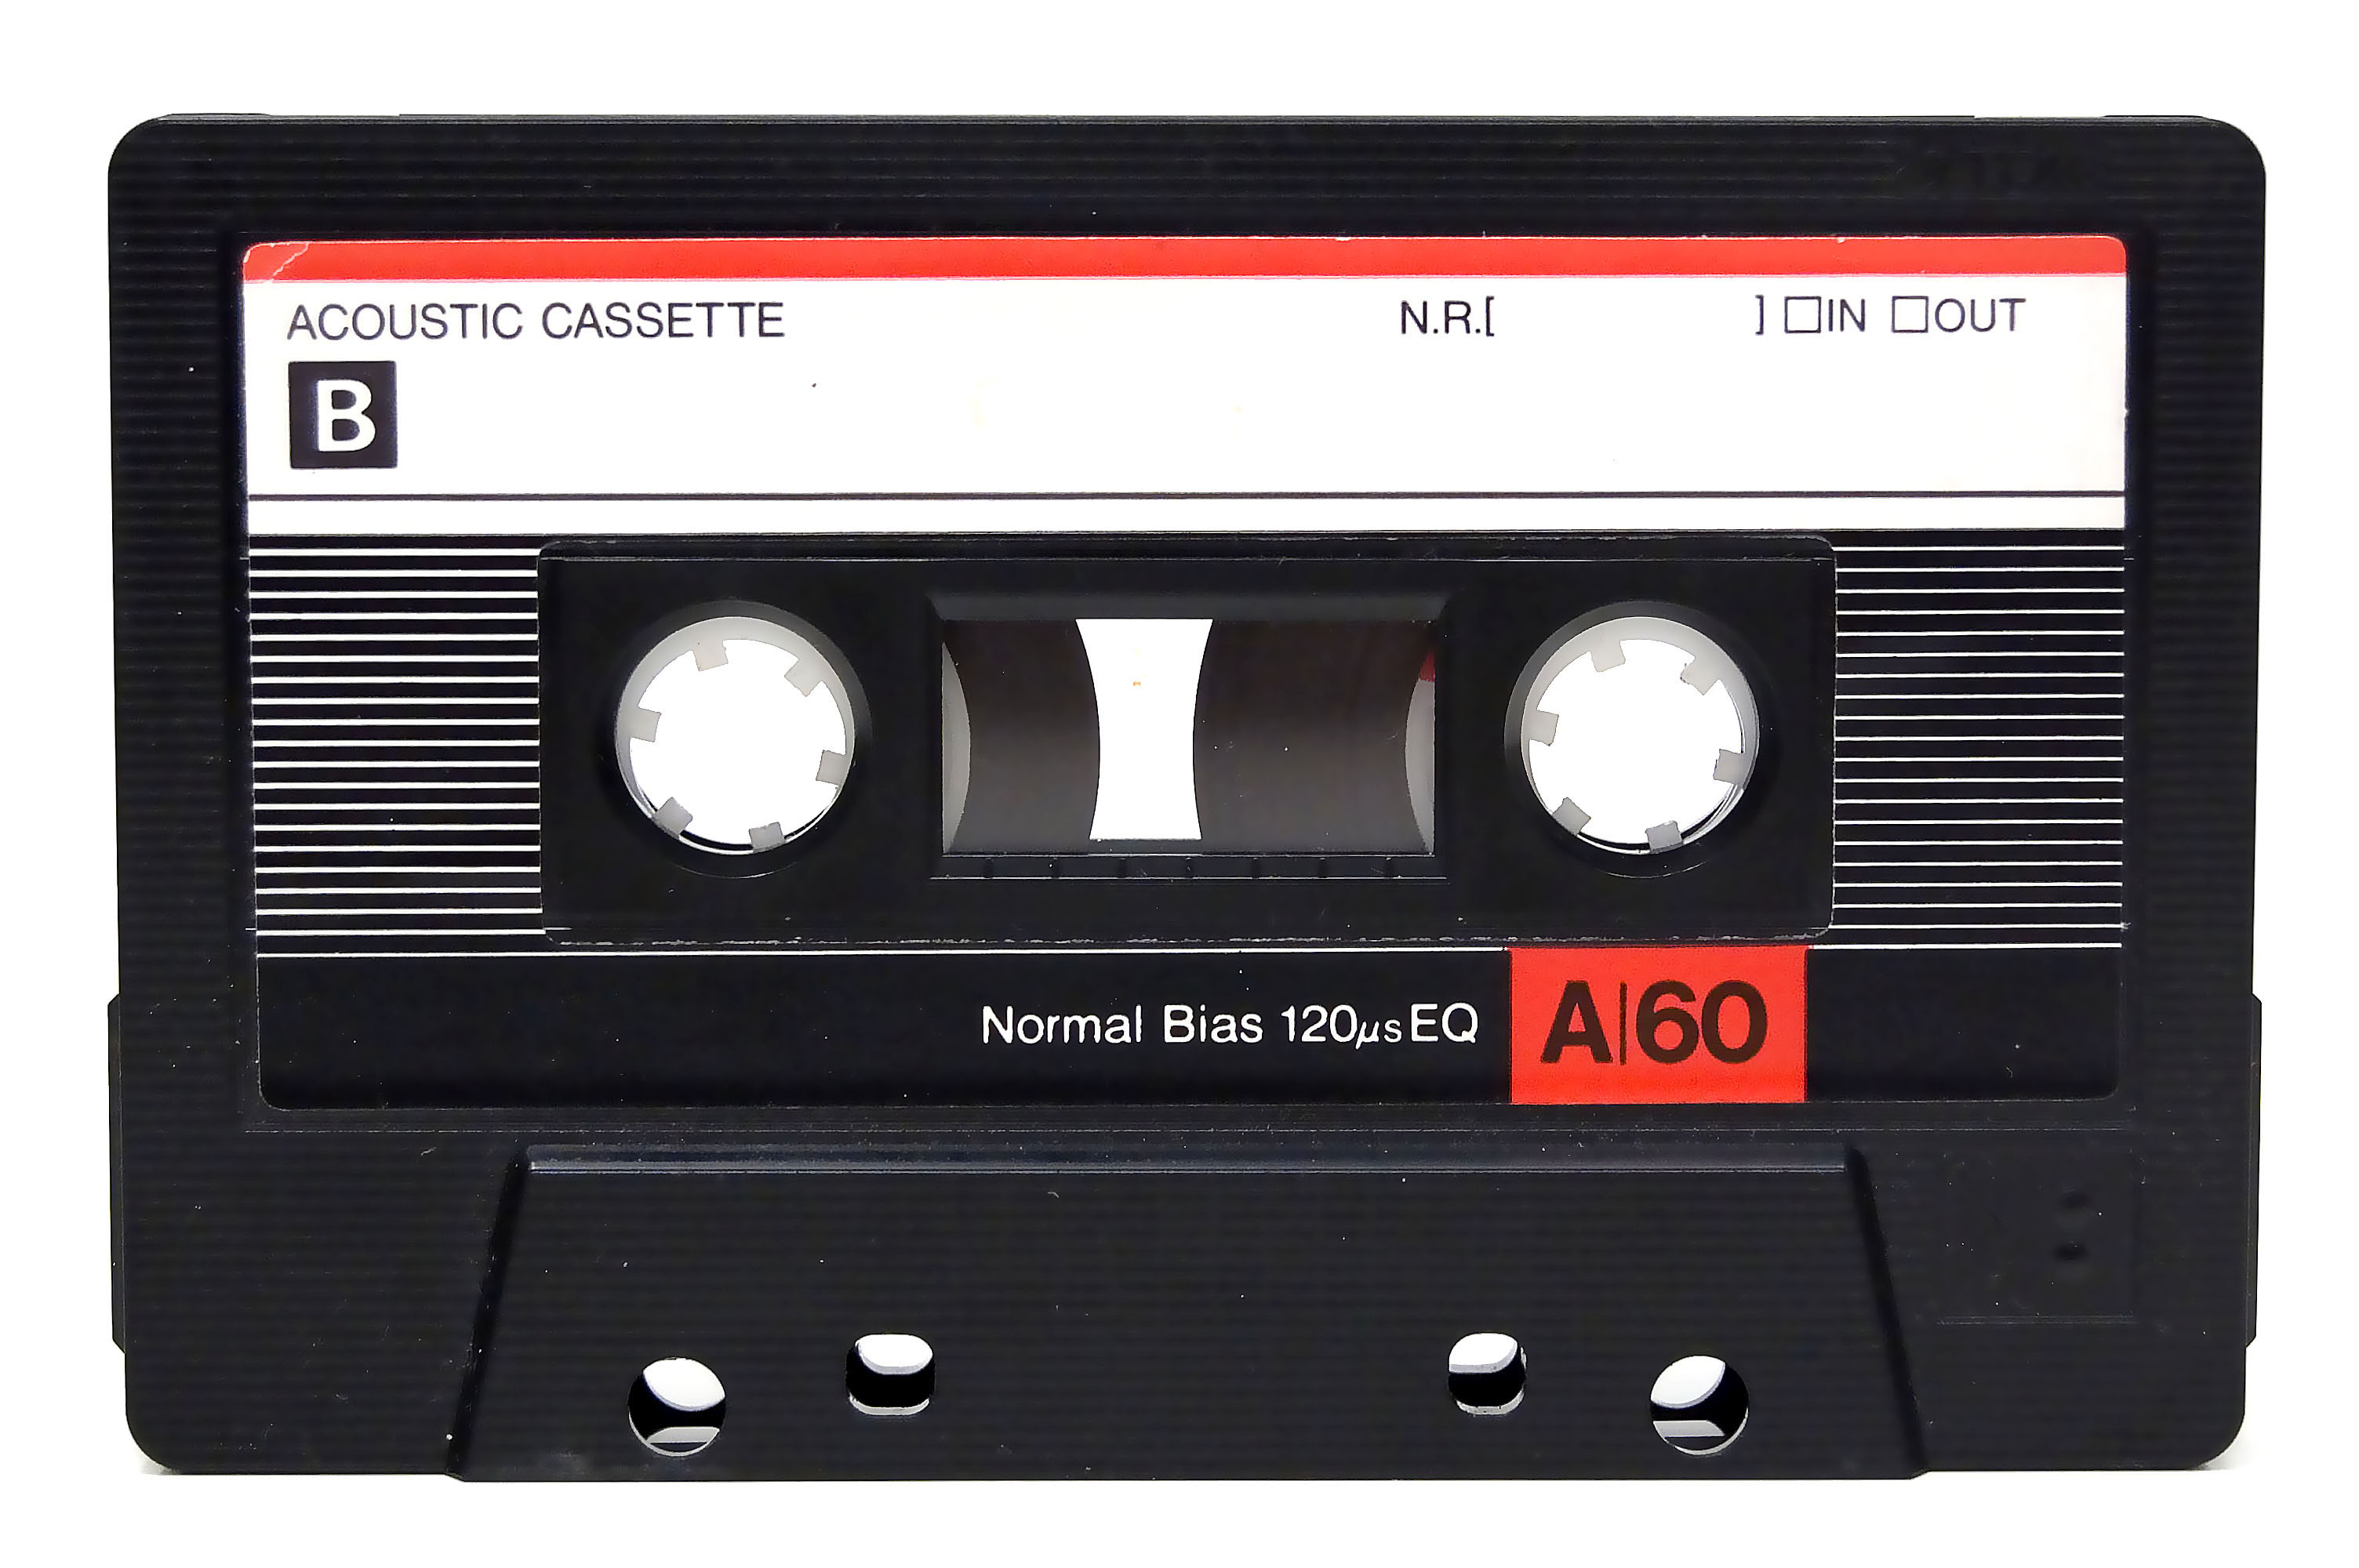 audio cassette tapes toss keep or transfer to digital